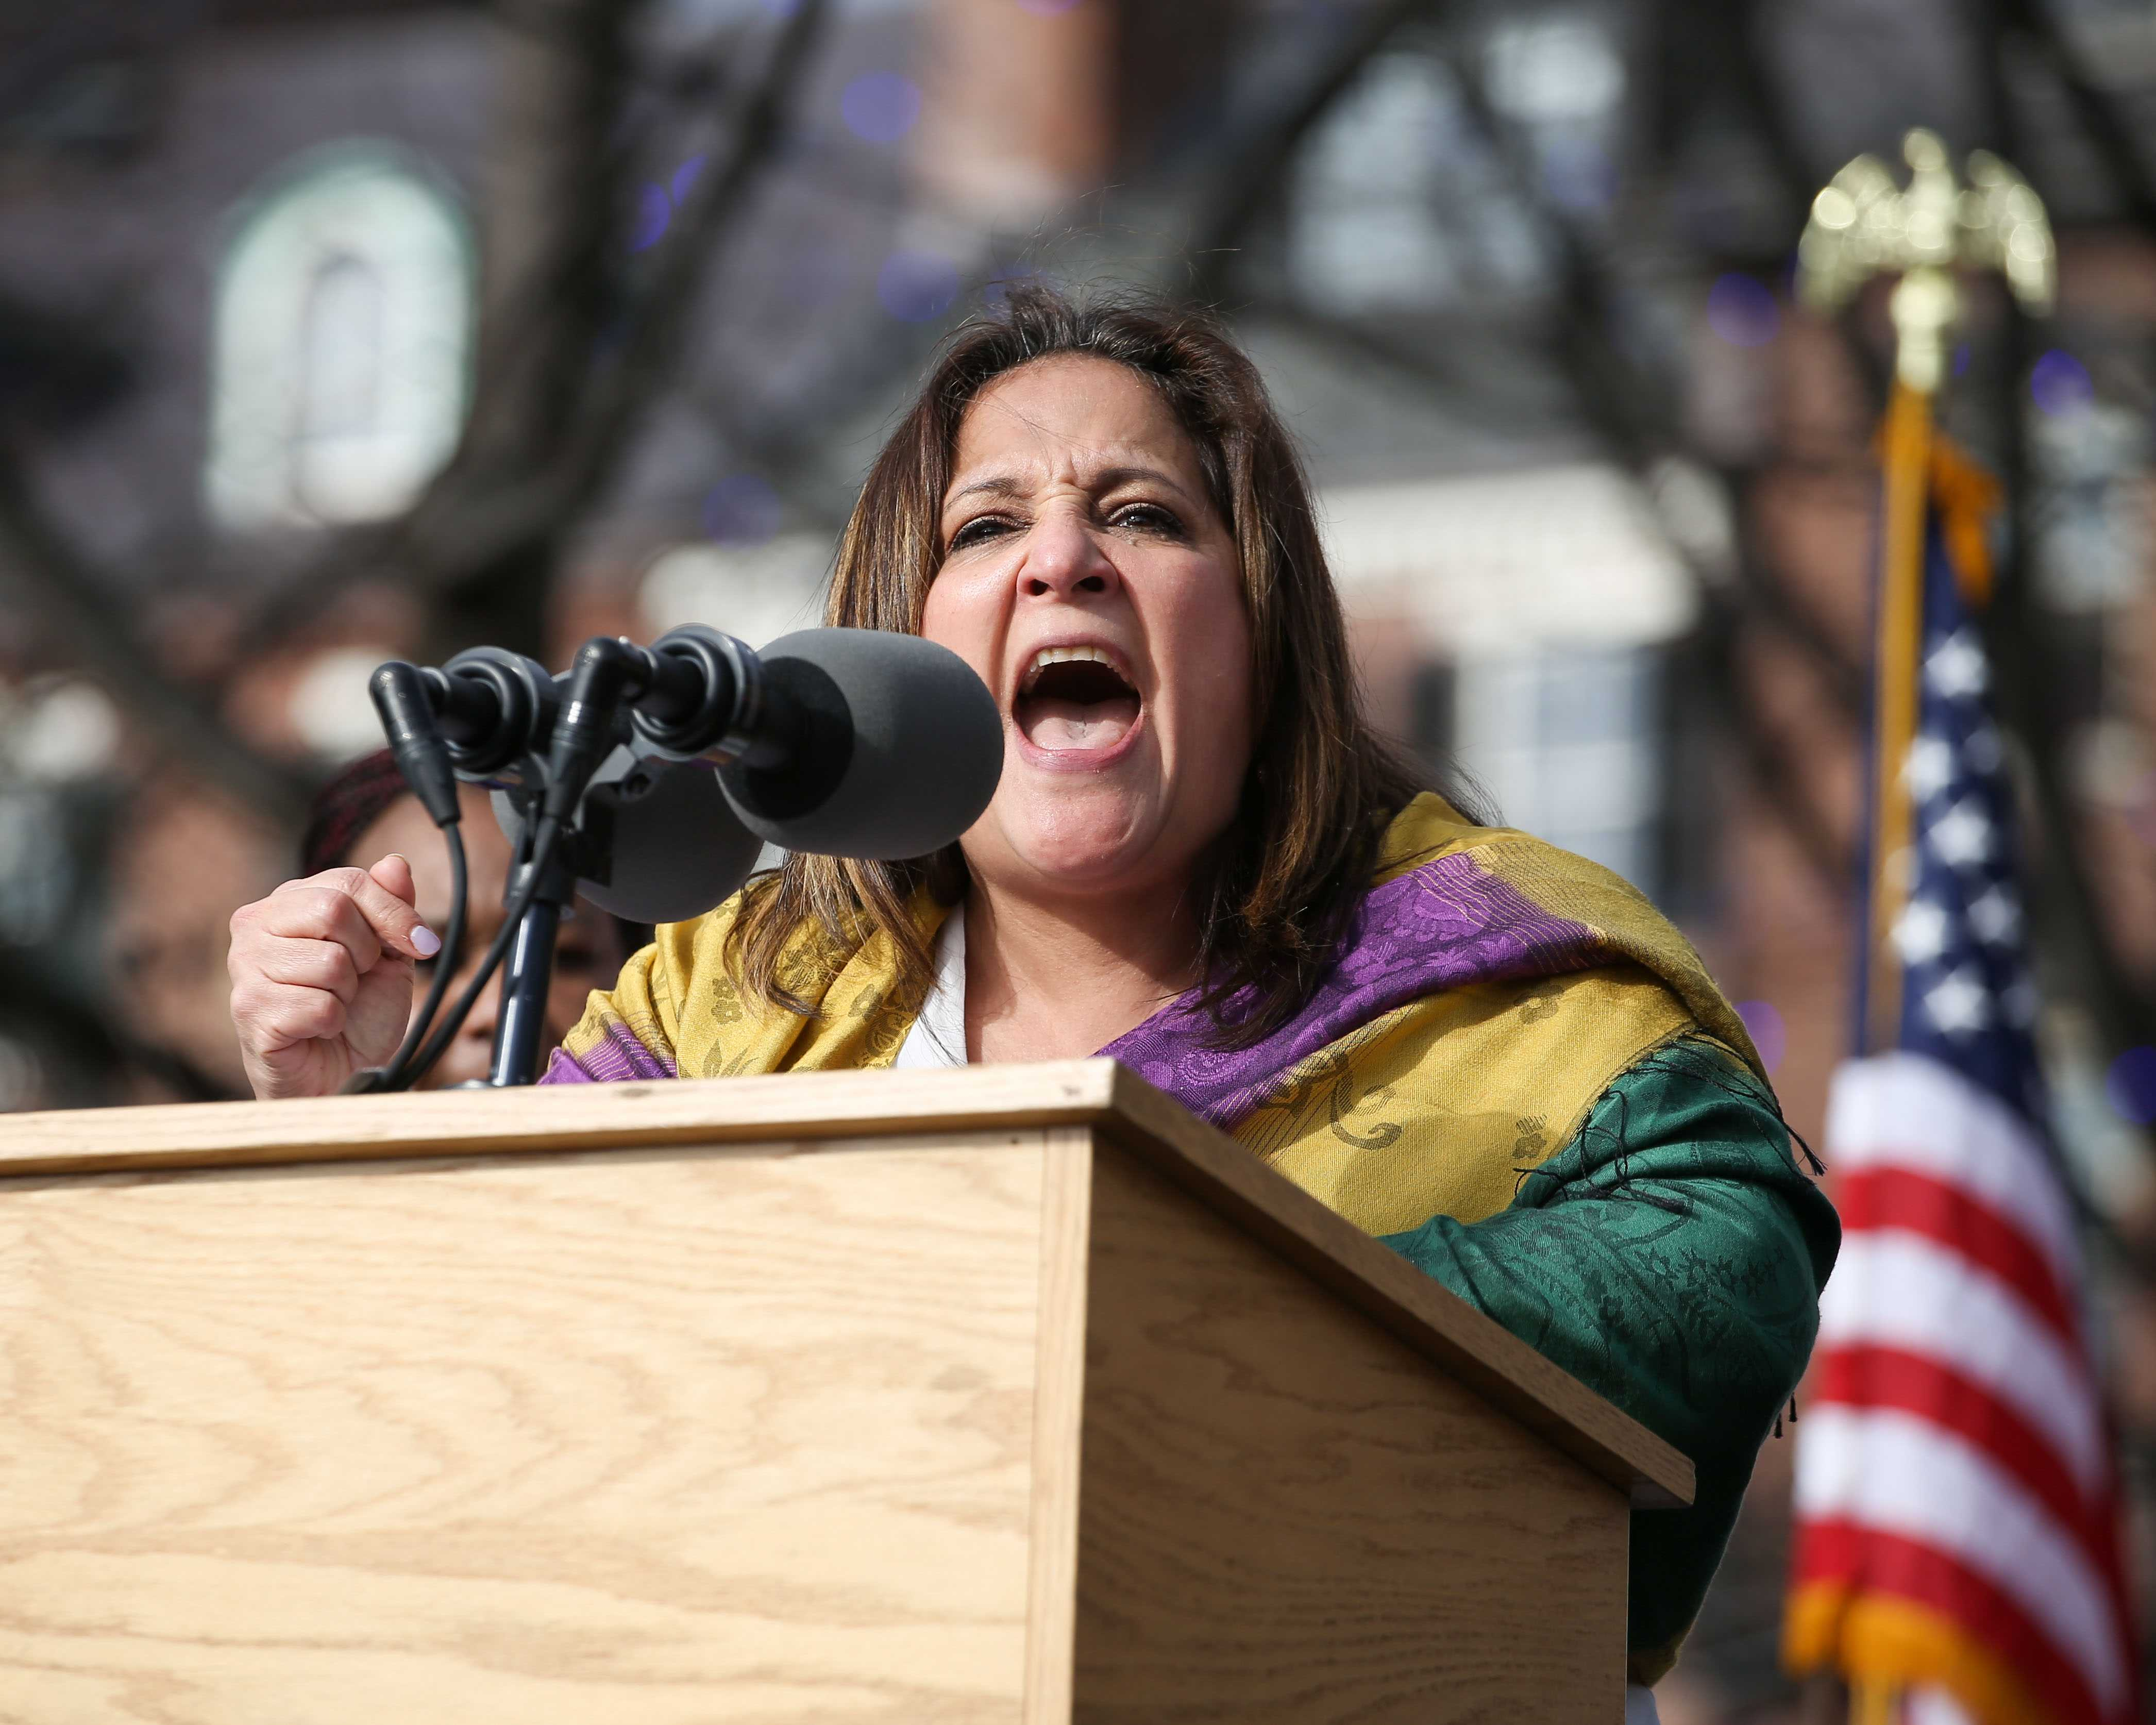 Roxana+Rivera%2C+head+of+32BJ+Service+Employees+International+Union+District+615%2C+speaks+to+the+crowd.